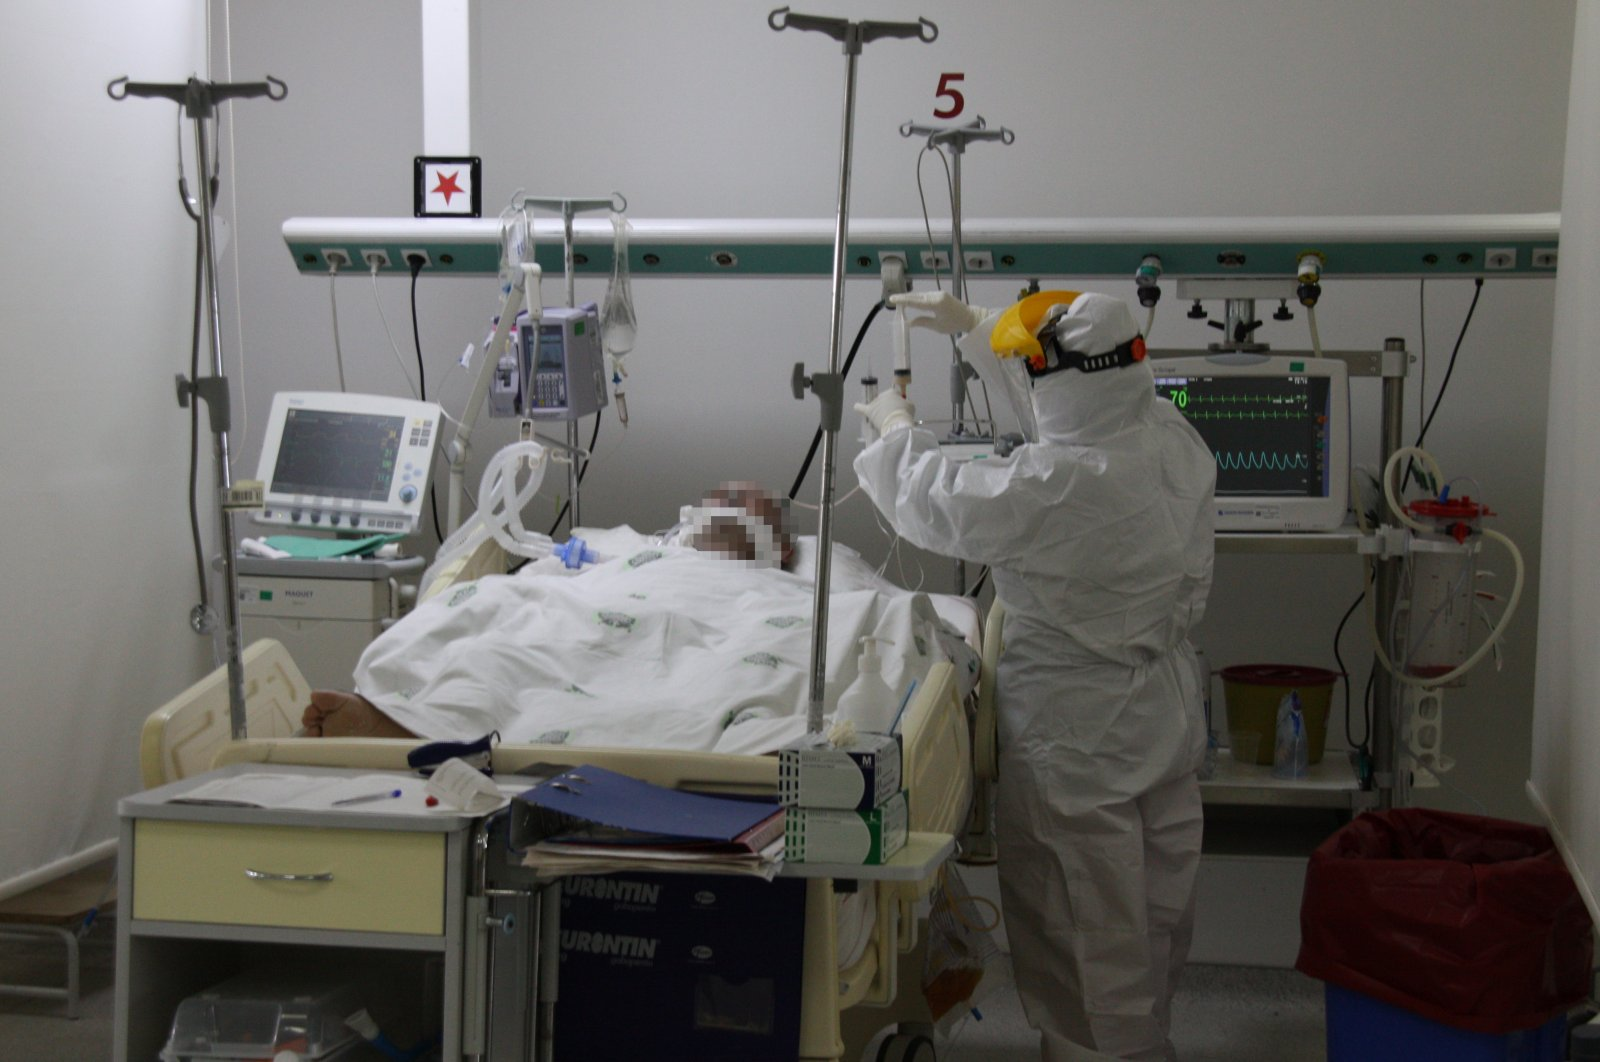 A doctor tends a COVID-19 patient at a hospital in Konya, central Turkey, Sept. 29, 2020. (AA Photo)